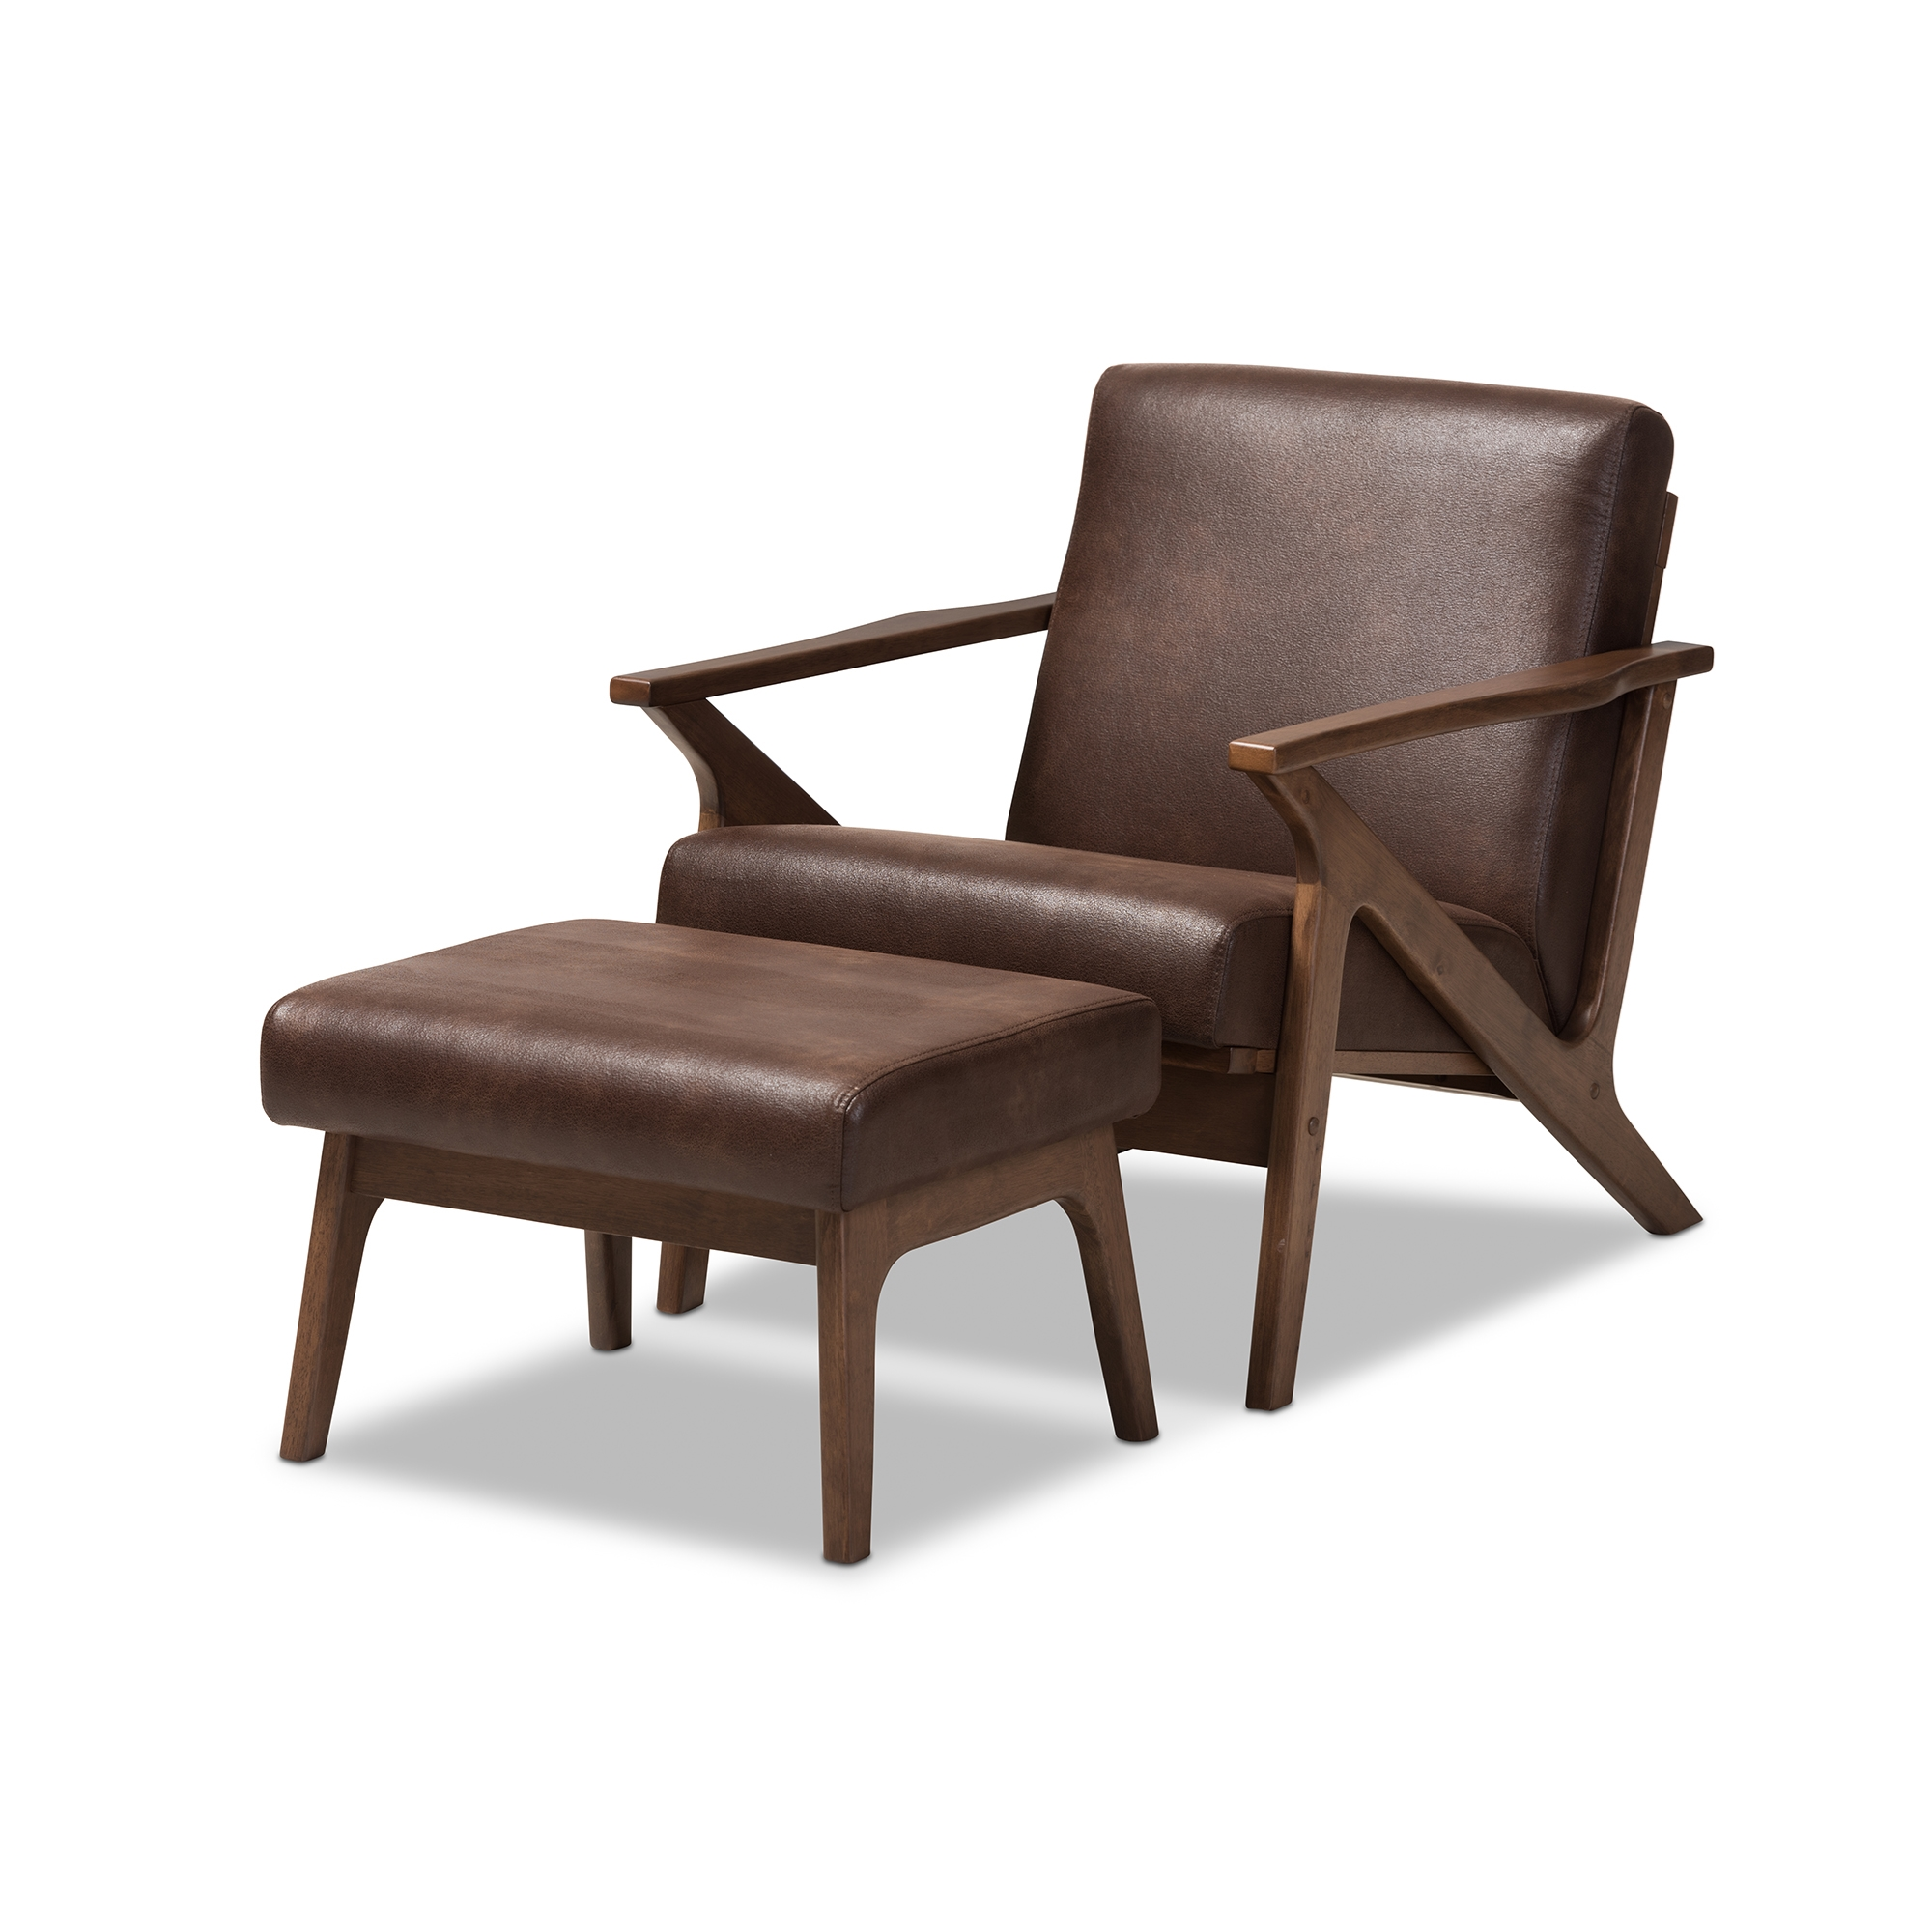 schubell vintage madsen listings vinterior by for leather bovenkamp ottoman lounge chair with